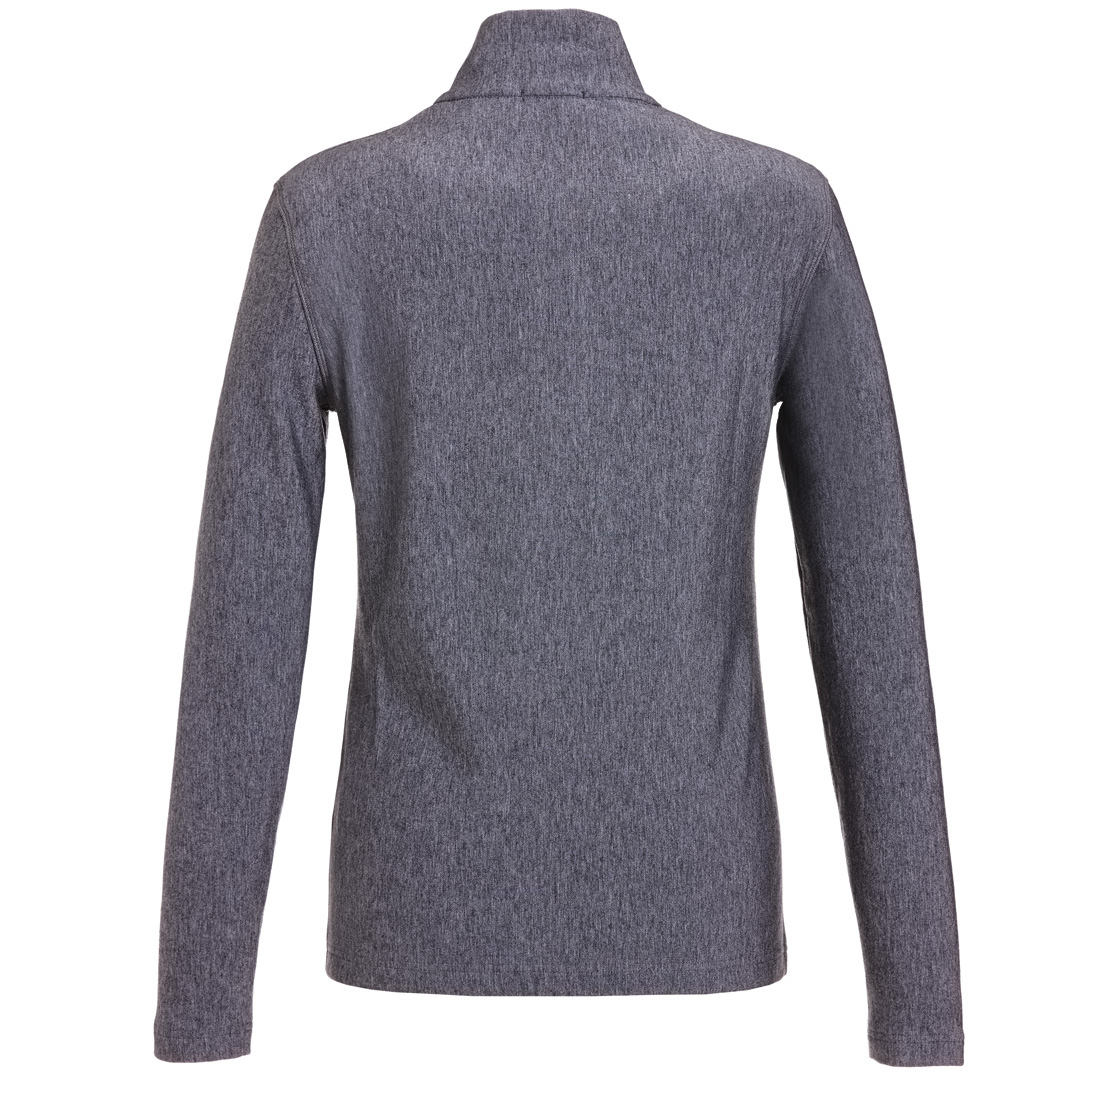 Damen Techno Wool Sweatshirt mit Cold Protection Funktion